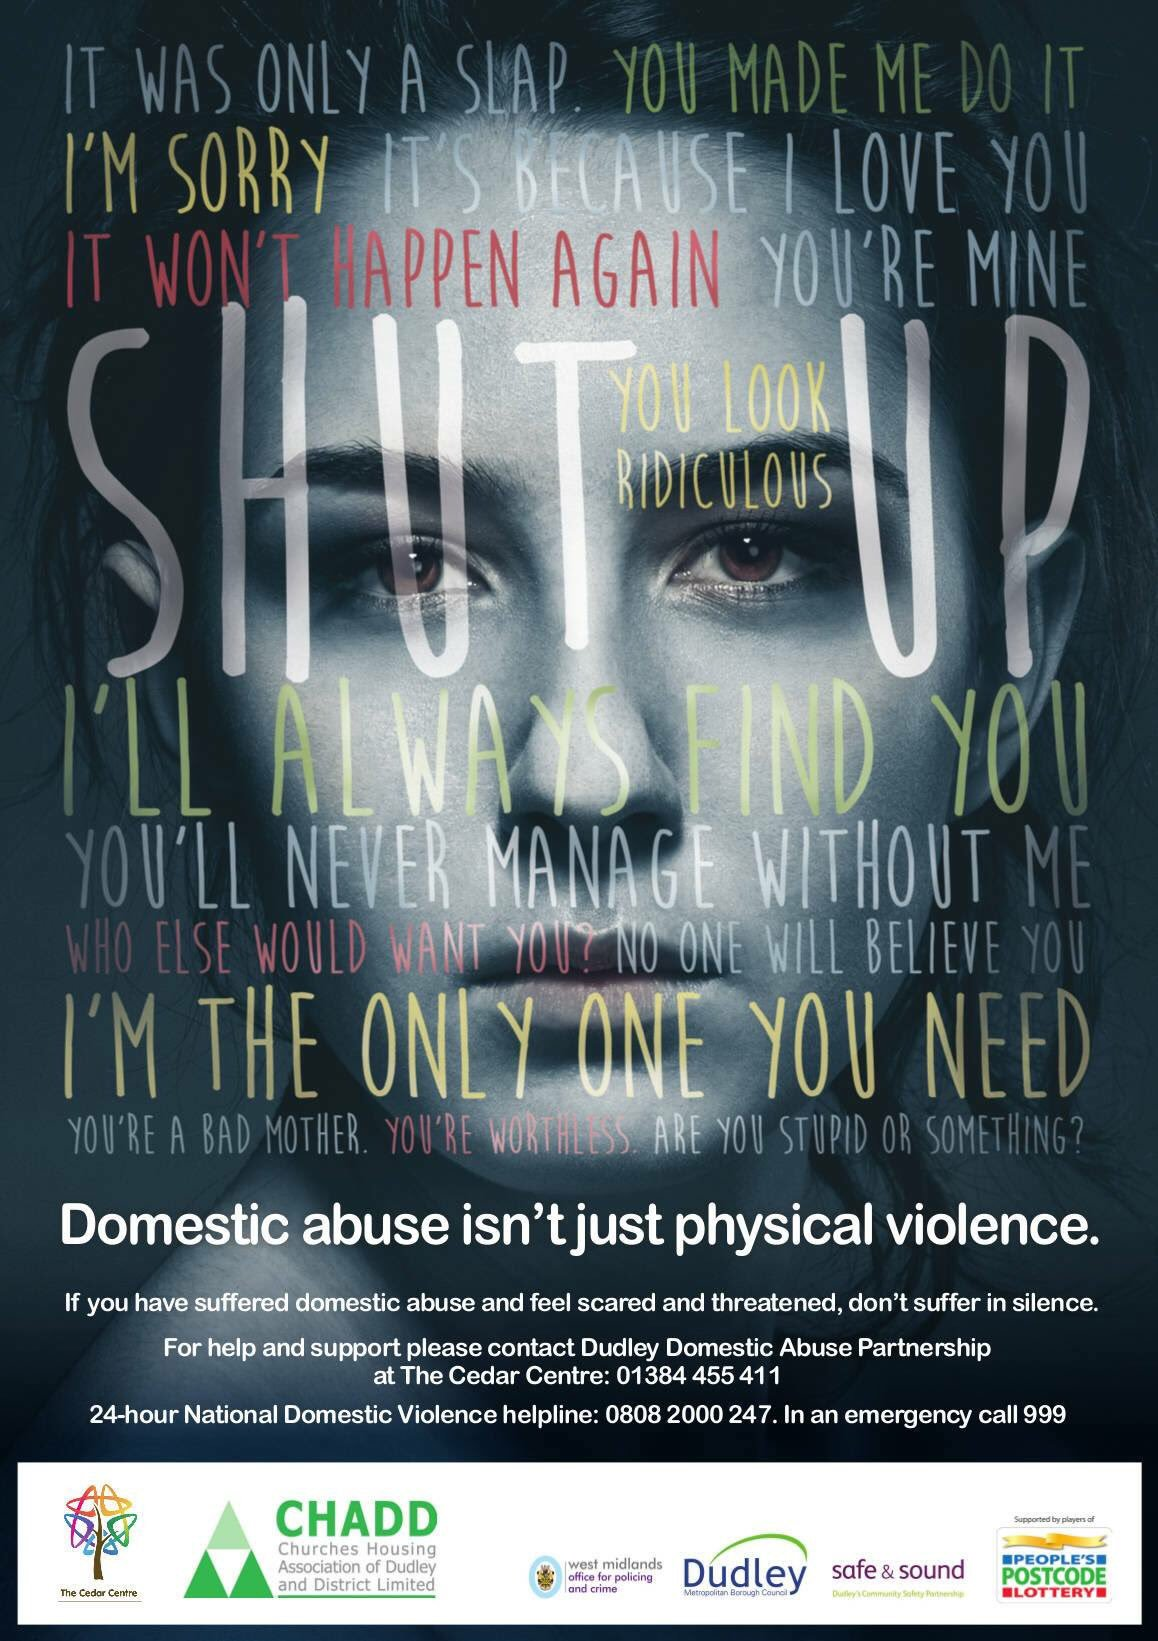 One Number Local Helpline for Domestic Abuse  CHADD